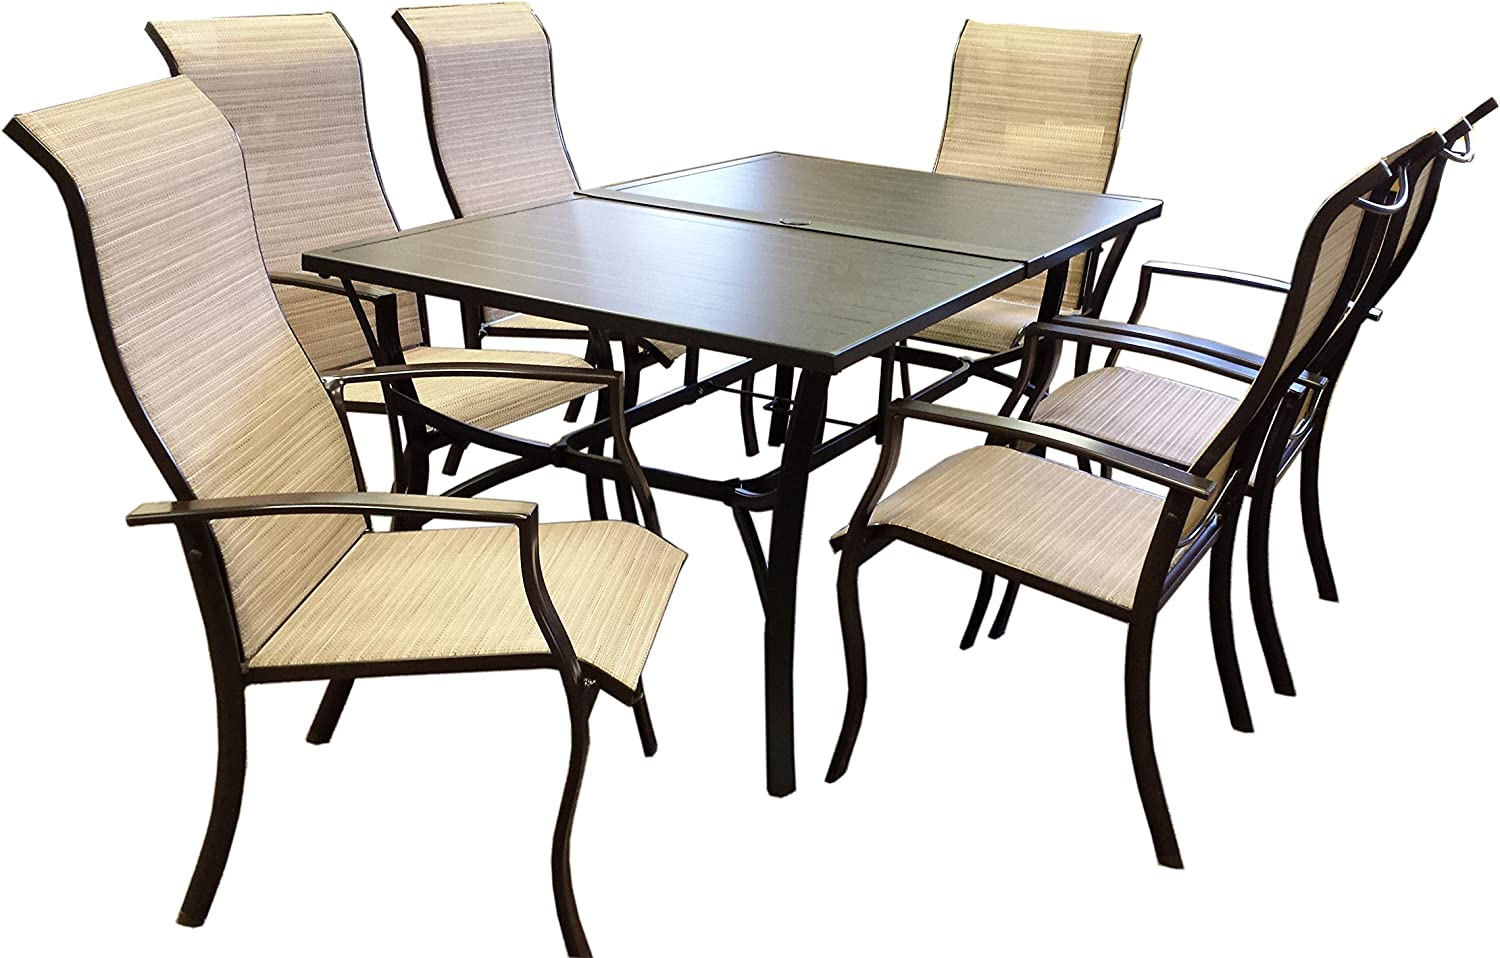 Rose Garden Patio 7-PC Dining OSOB Set Slat Top Table and Sling Chair